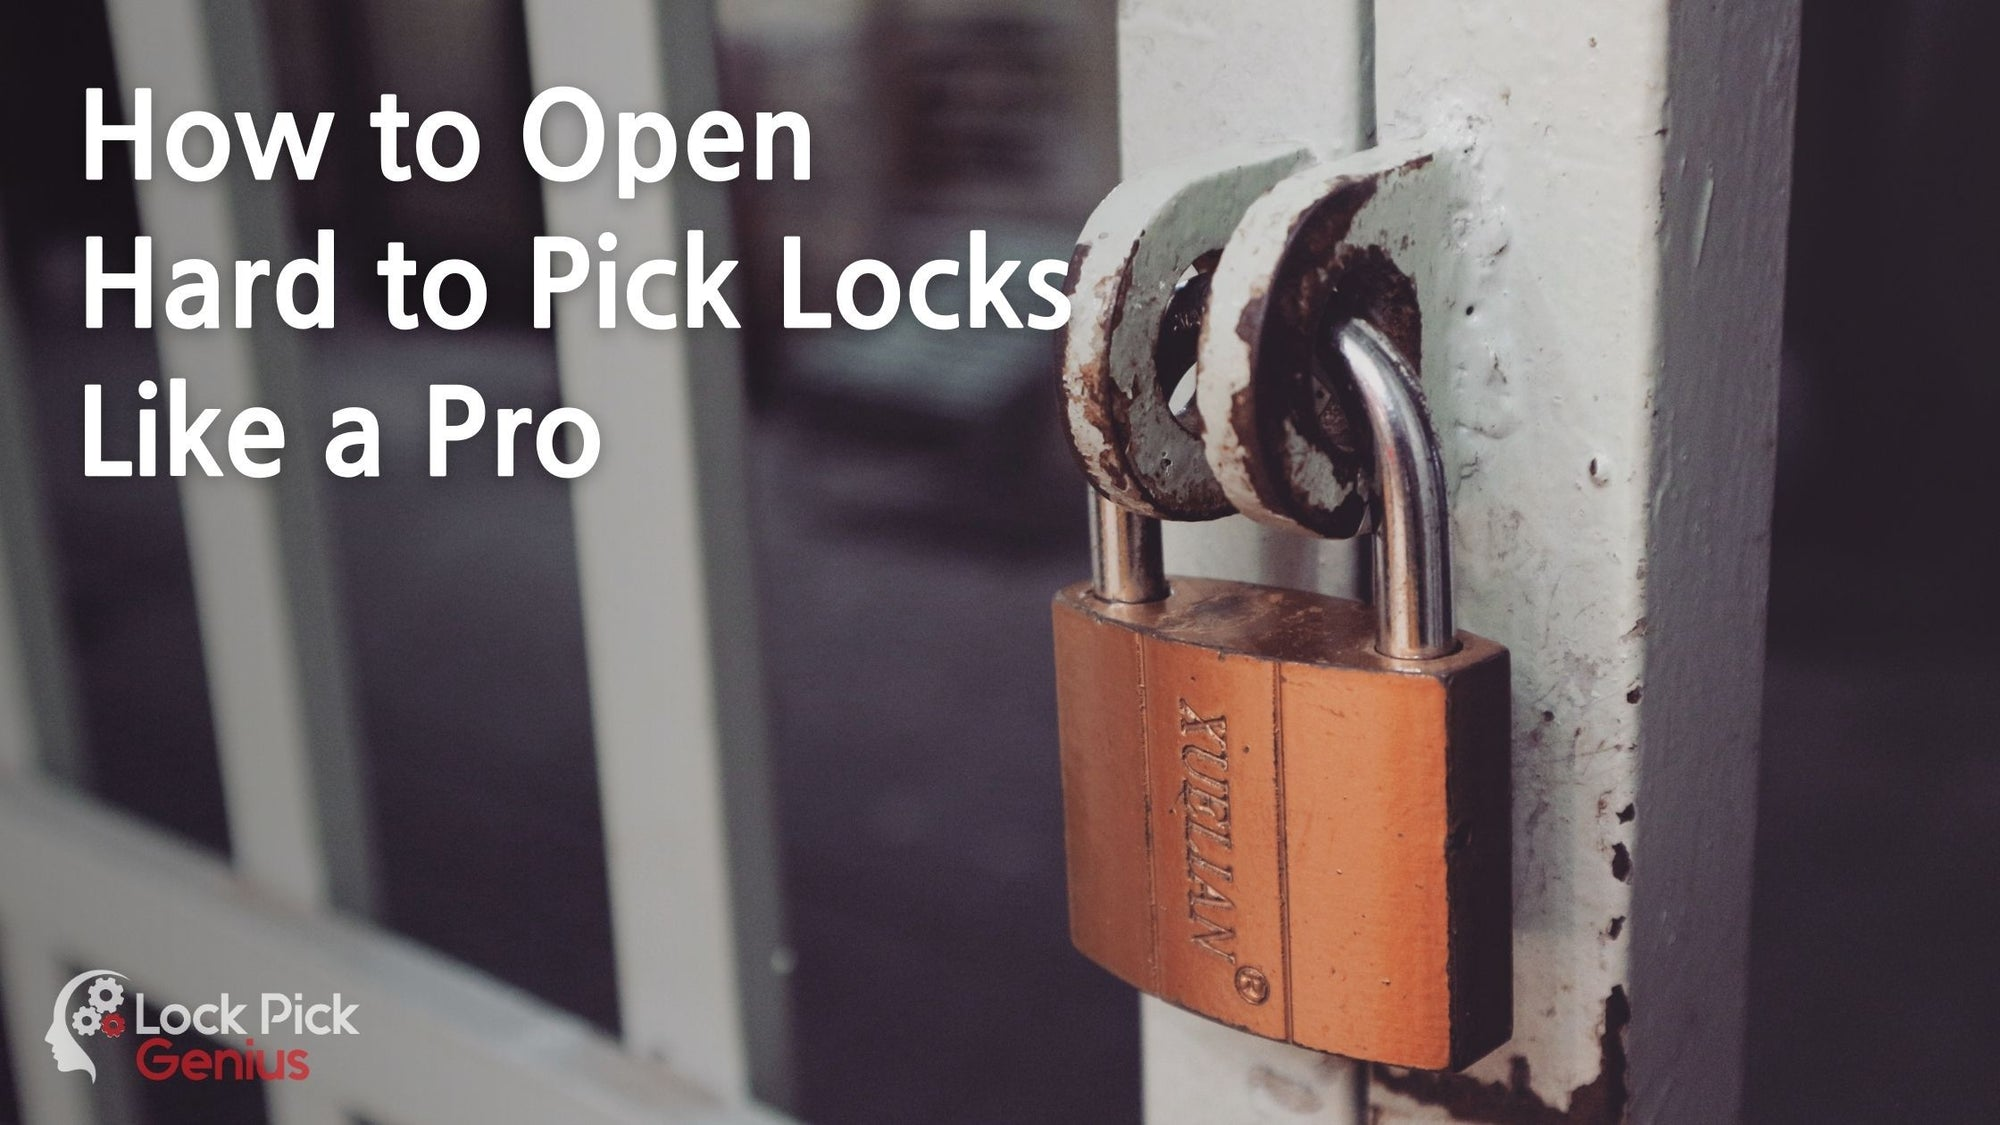 How to Open Hard to Pick Locks Like a Pro